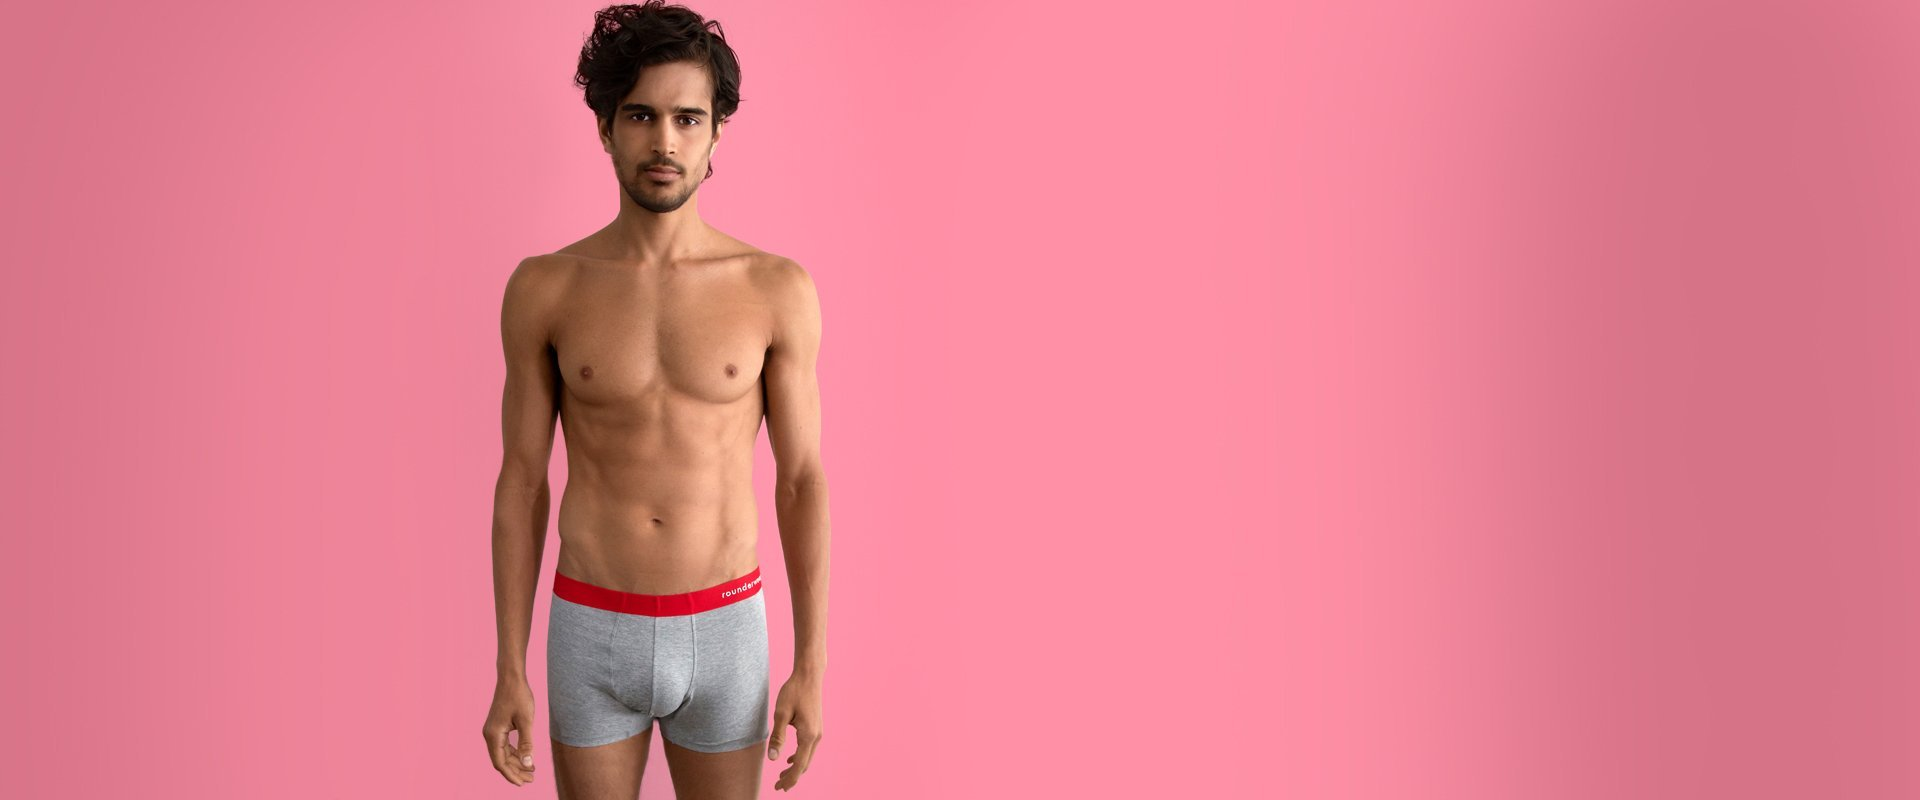 Rounderwear Boxer Trunk Essentials - Boxer Trunk - Rounderbum Shark Tank Men Shapewear and Underwear